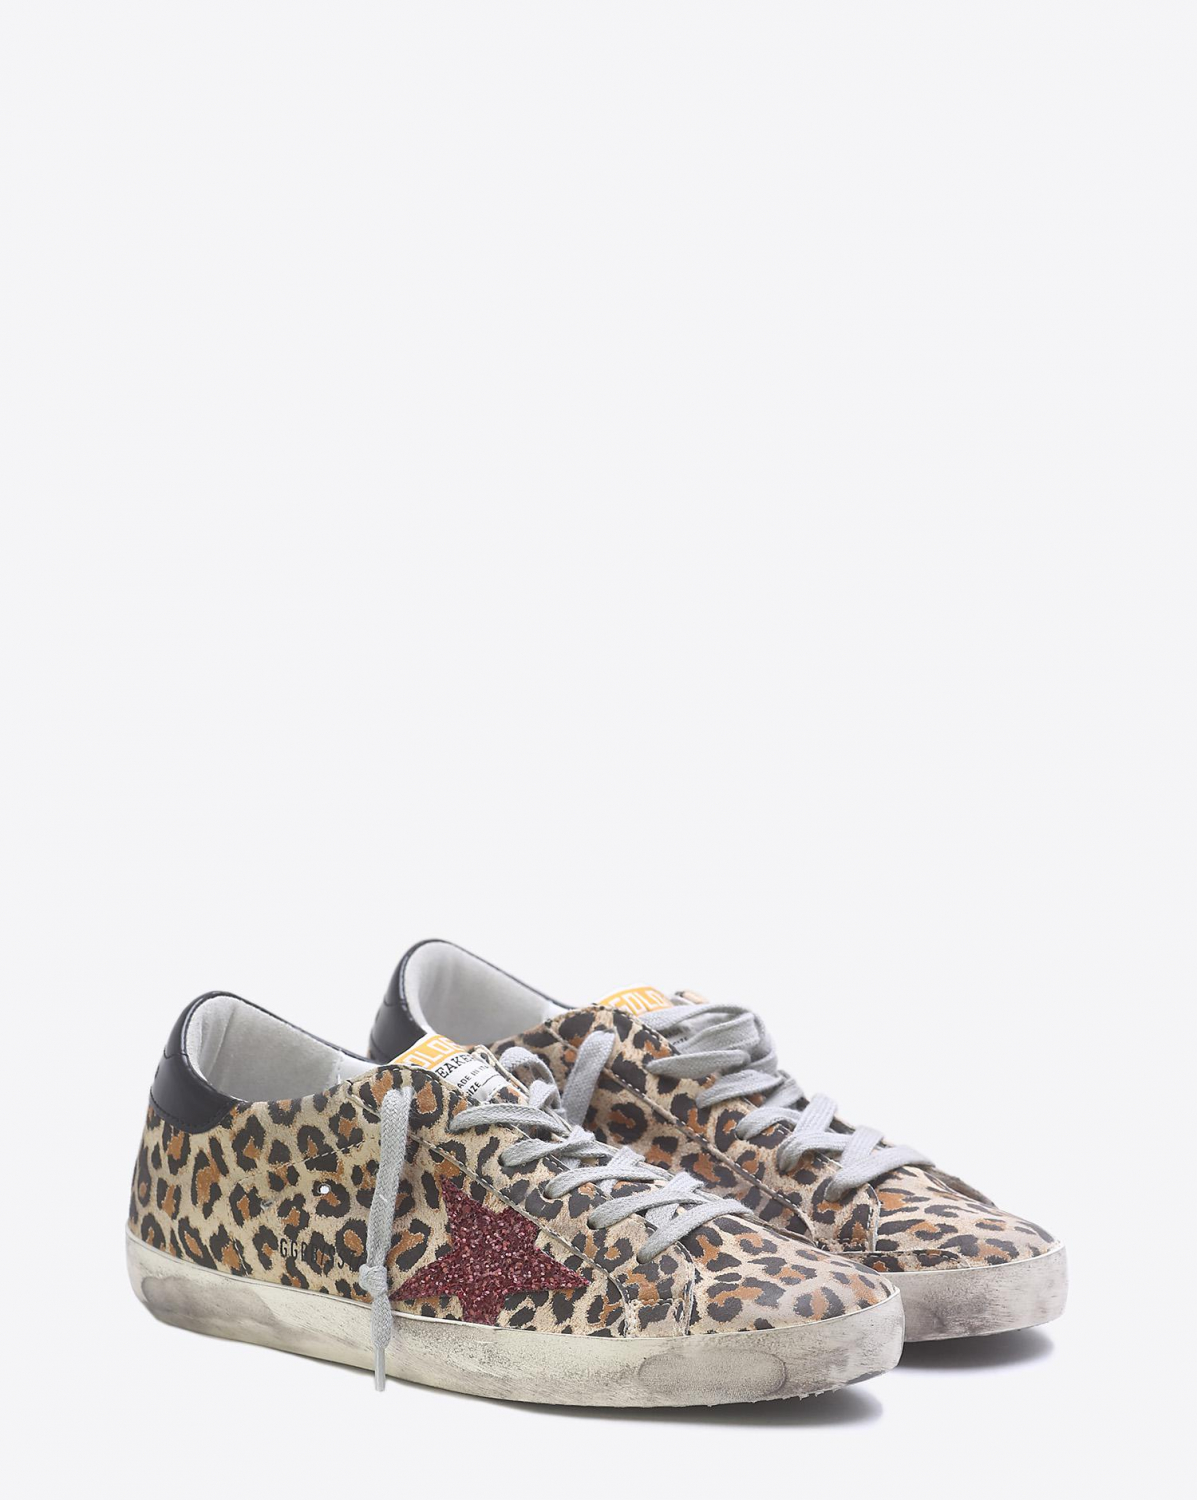 Golden Goose Woman Collection Sneakers Superstar - Leopard SuedeRed Glitter Star